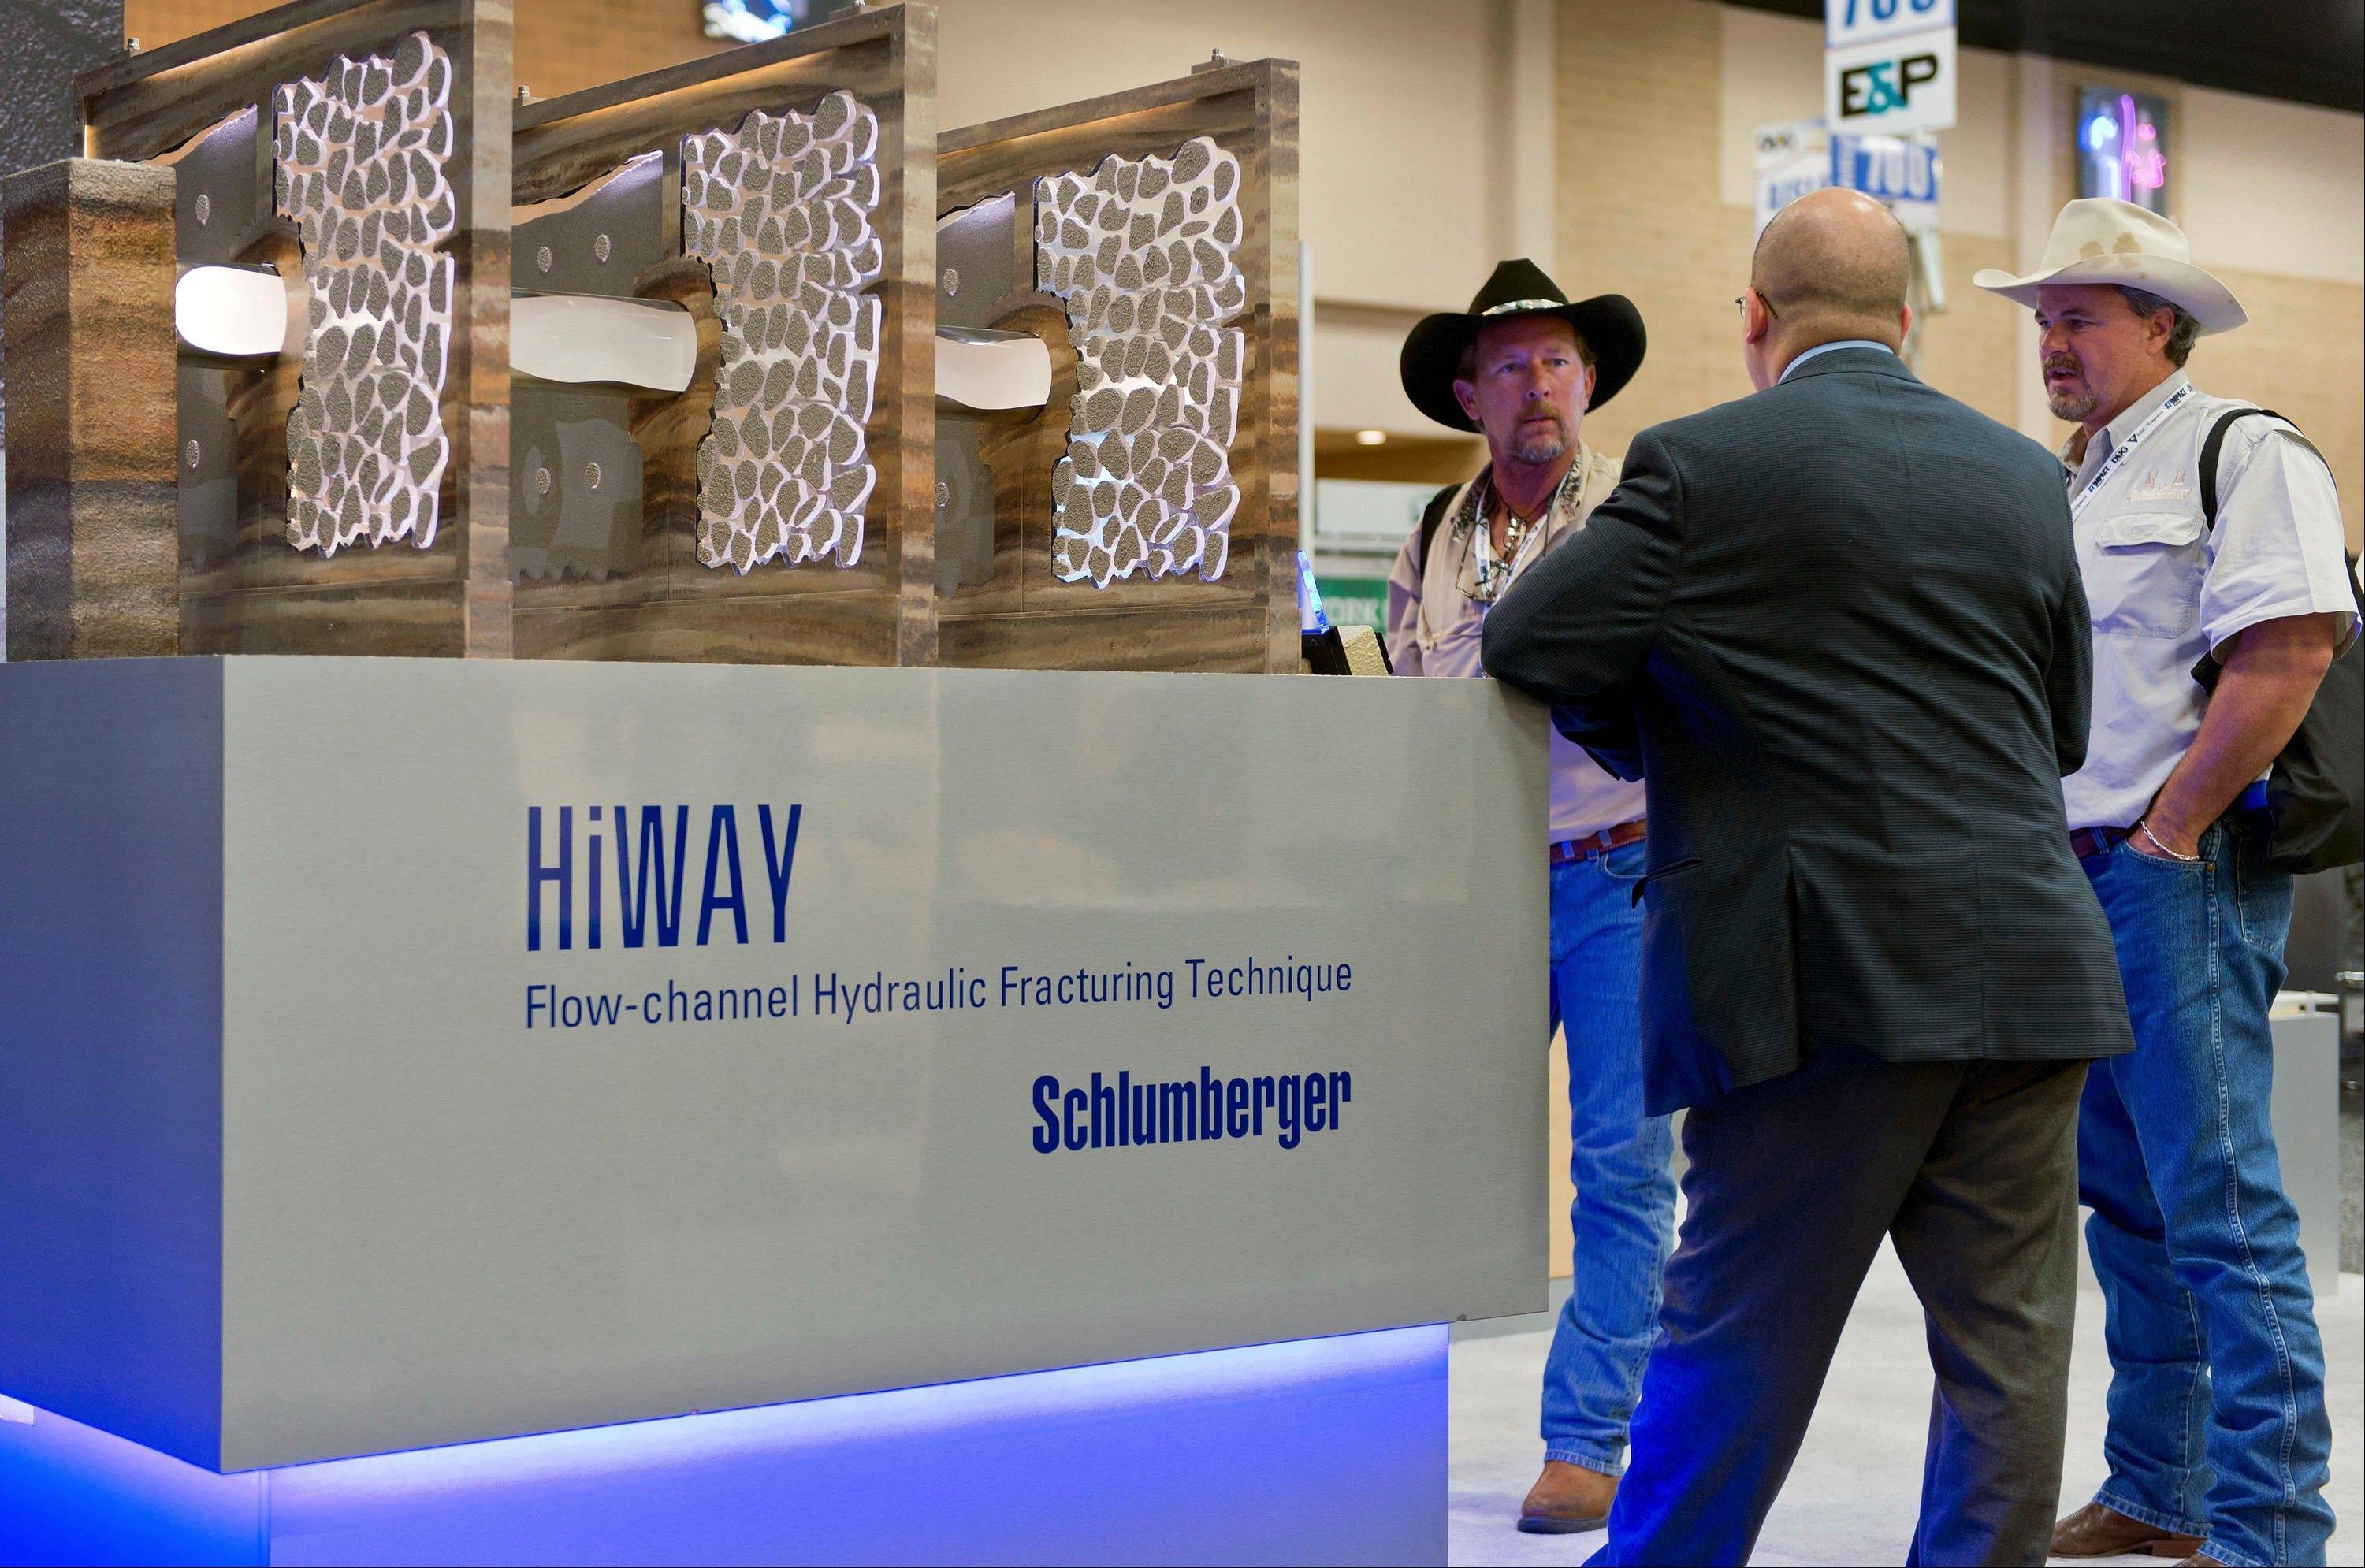 A Schlumberger Ltd. representative, center, discusses the company's HiWAY Flow Channel Hydraulic Fracturing system last Monday with attendees at the DUG Eagle Ford Conference & Exhibition in San Antonio, Texas.